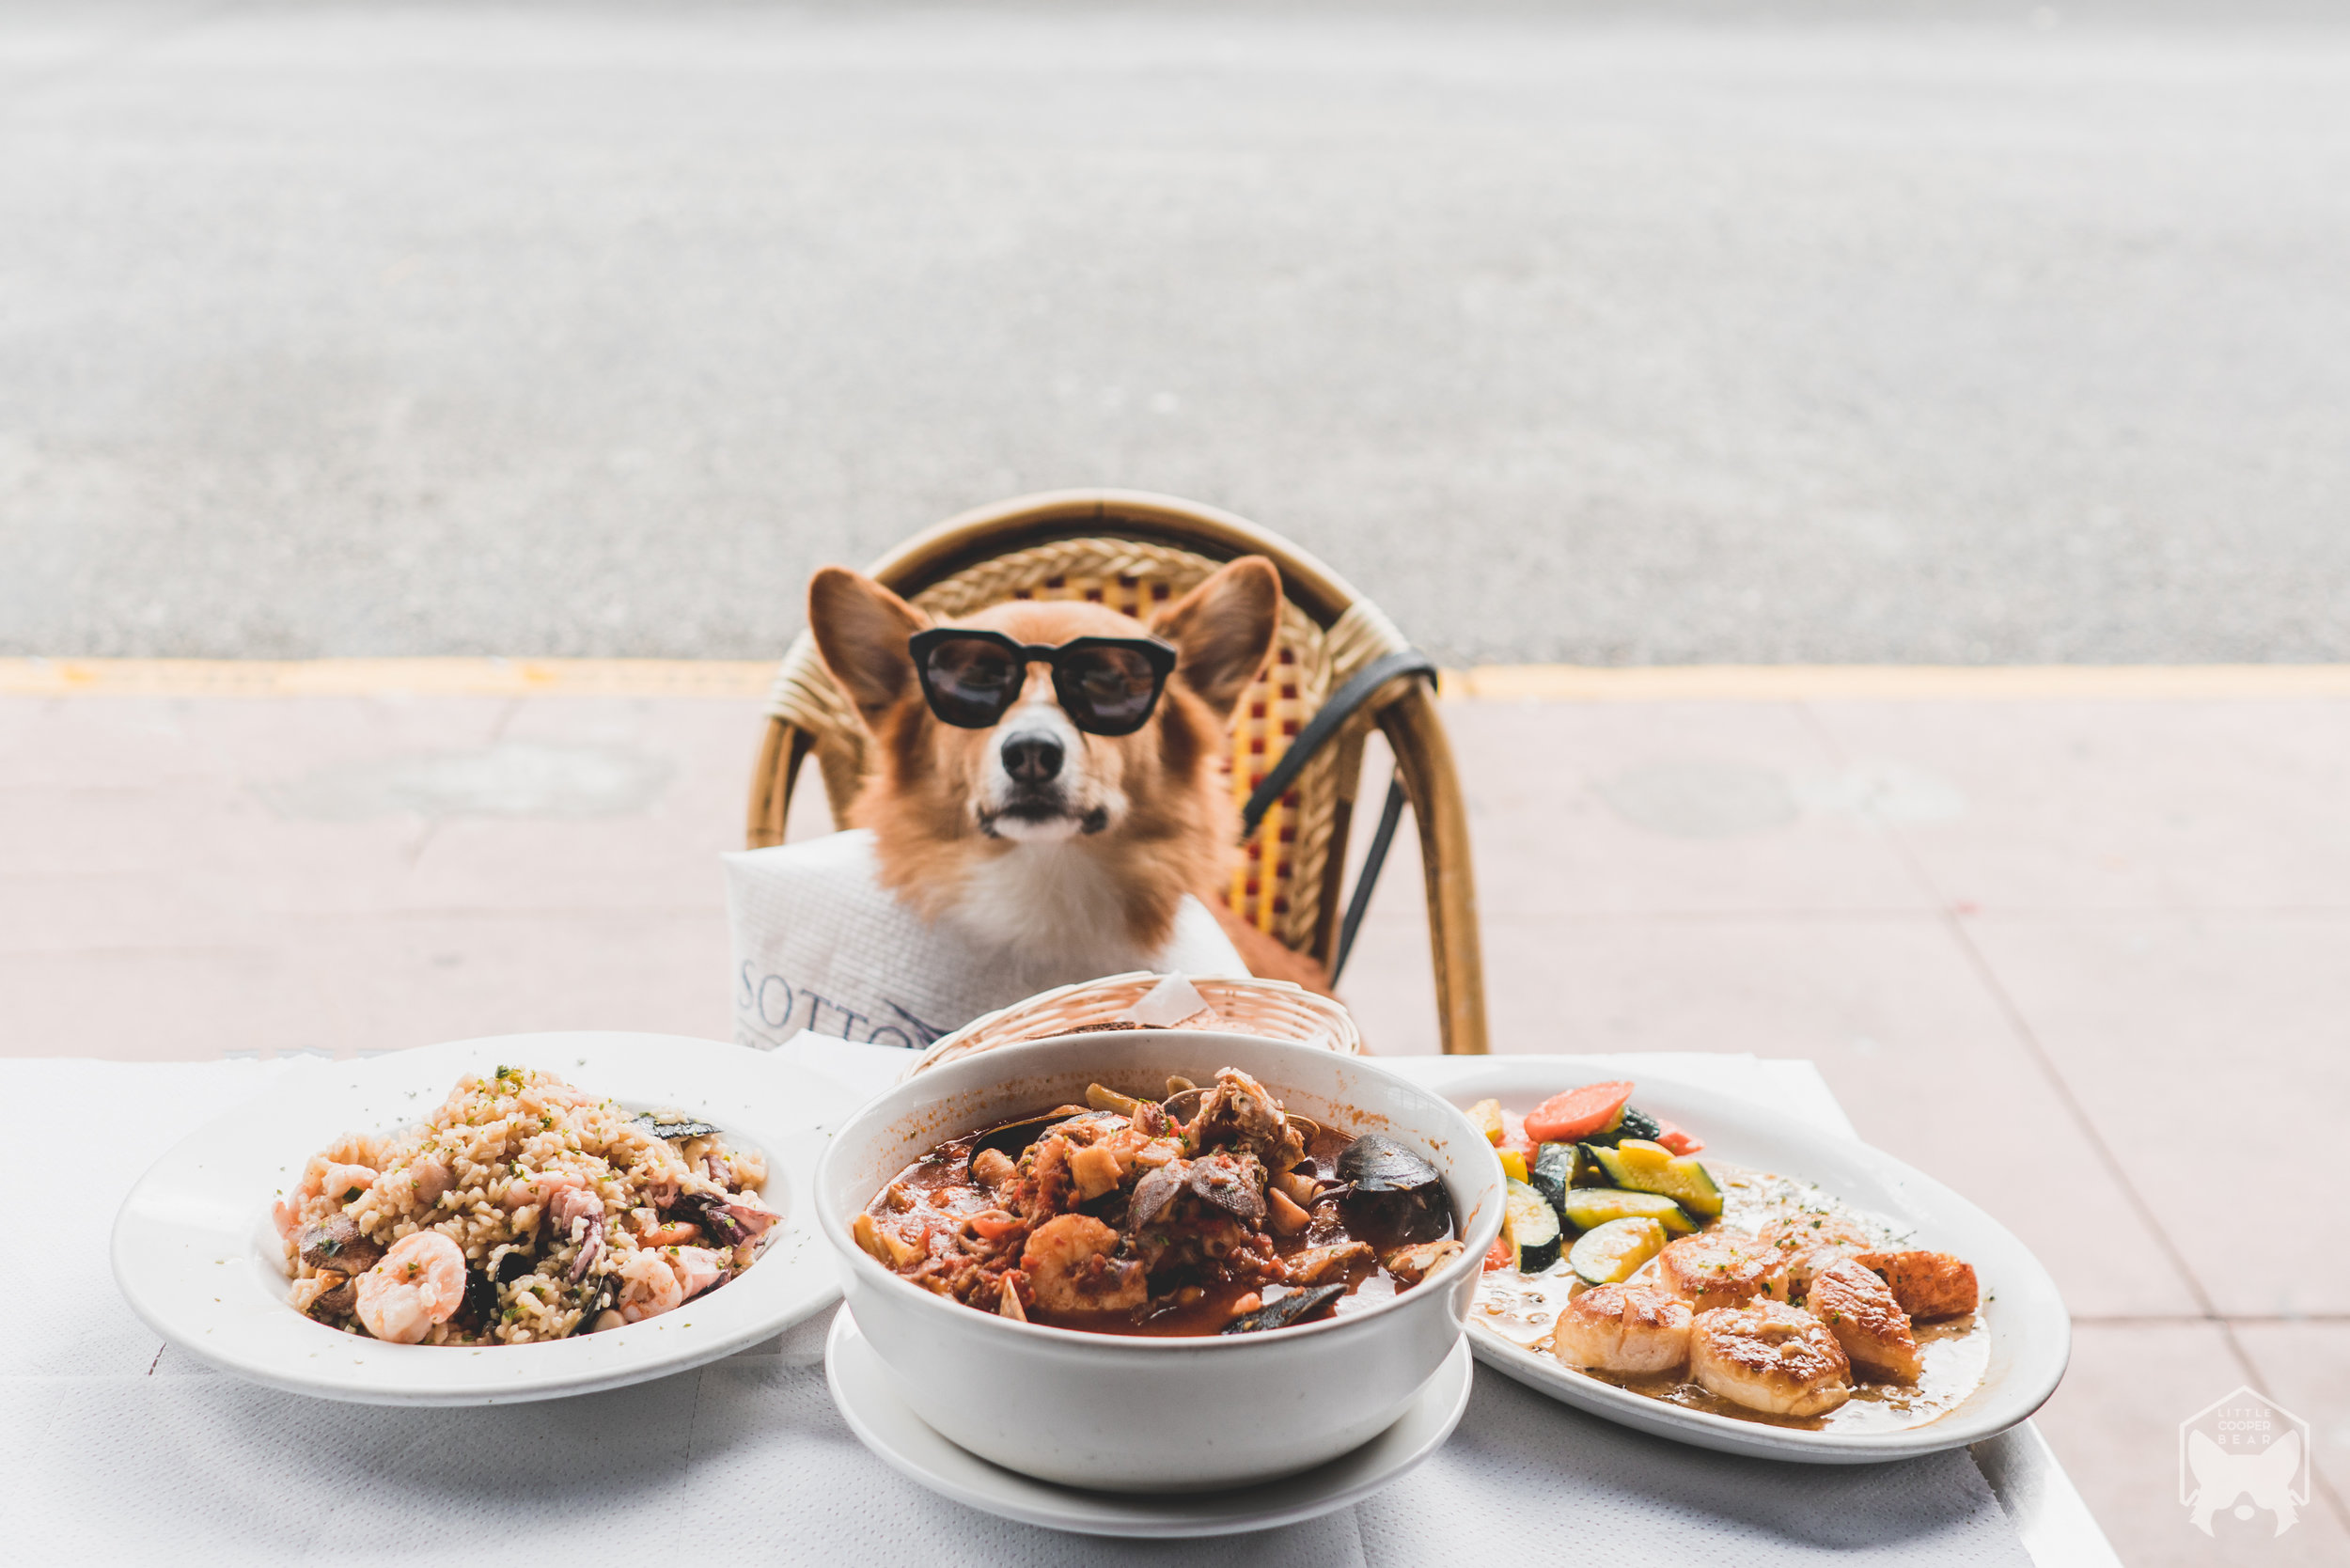 Top 7 Dog-Friendly Restaurants || San Francisco